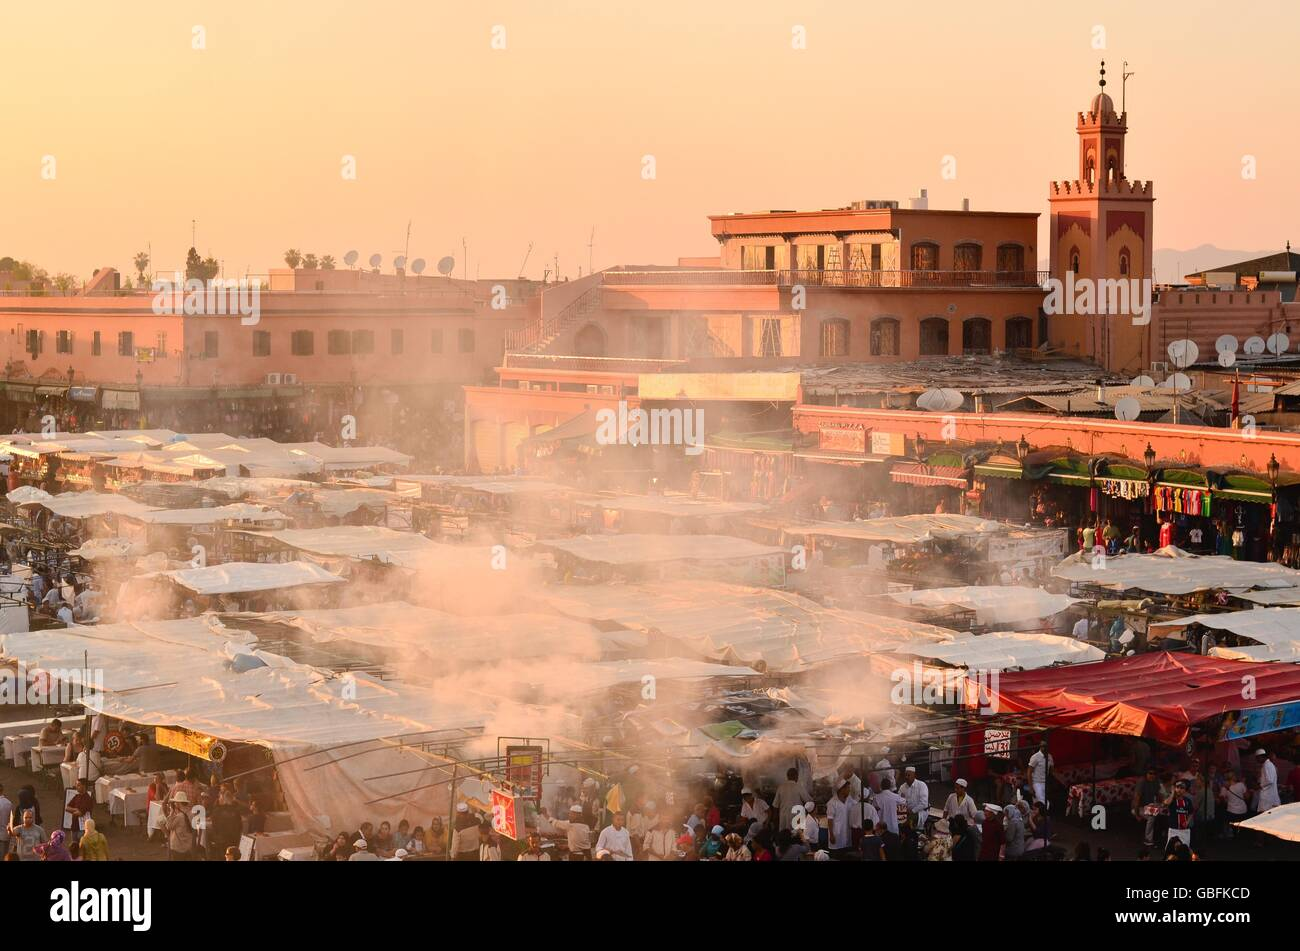 Jemaa el-Fnaa Square During Sunset Stock Photo